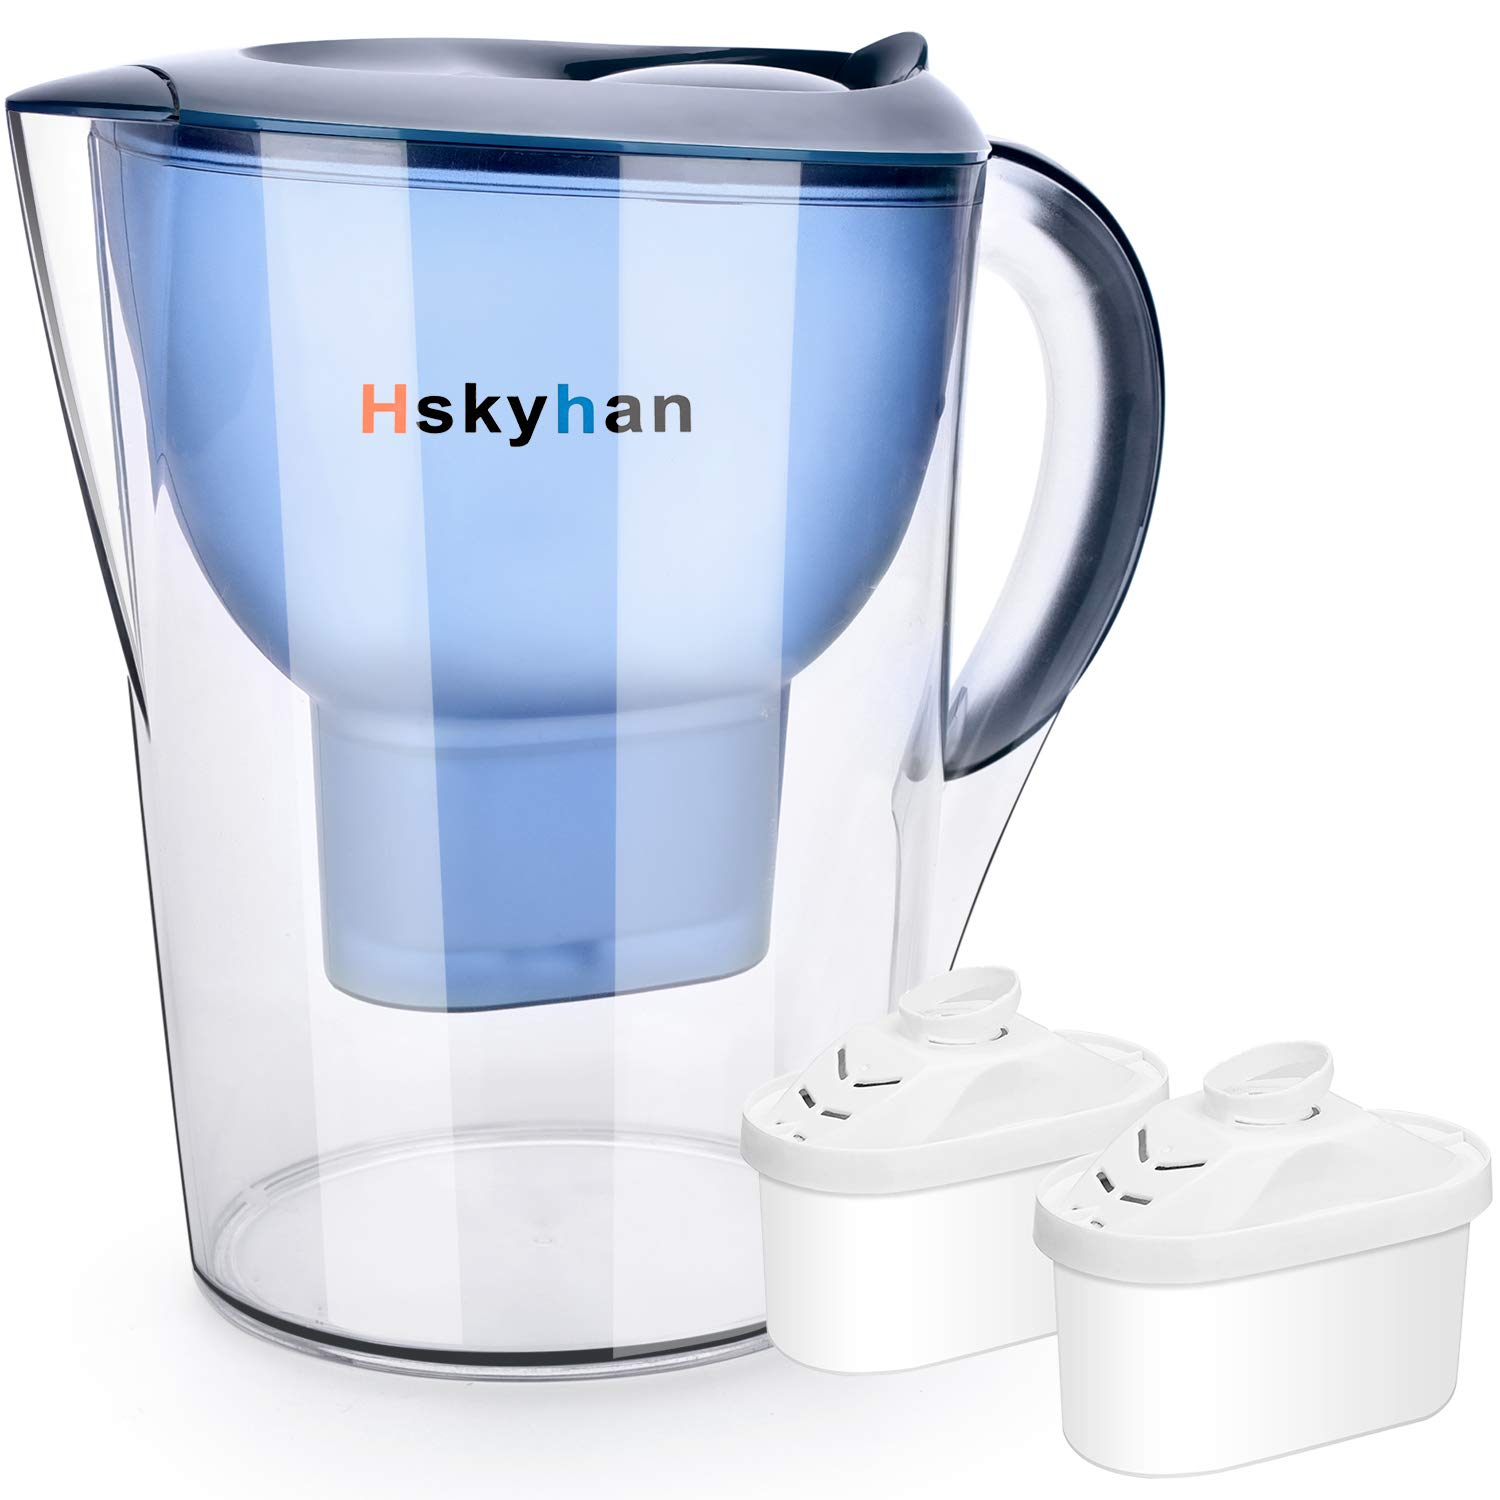 Hskyhan Alkaline Water Filter Pitcher - 3.5 Liters Improve PH, 2 Filters Included, 7 Stage Filteration System to Purify, Blue